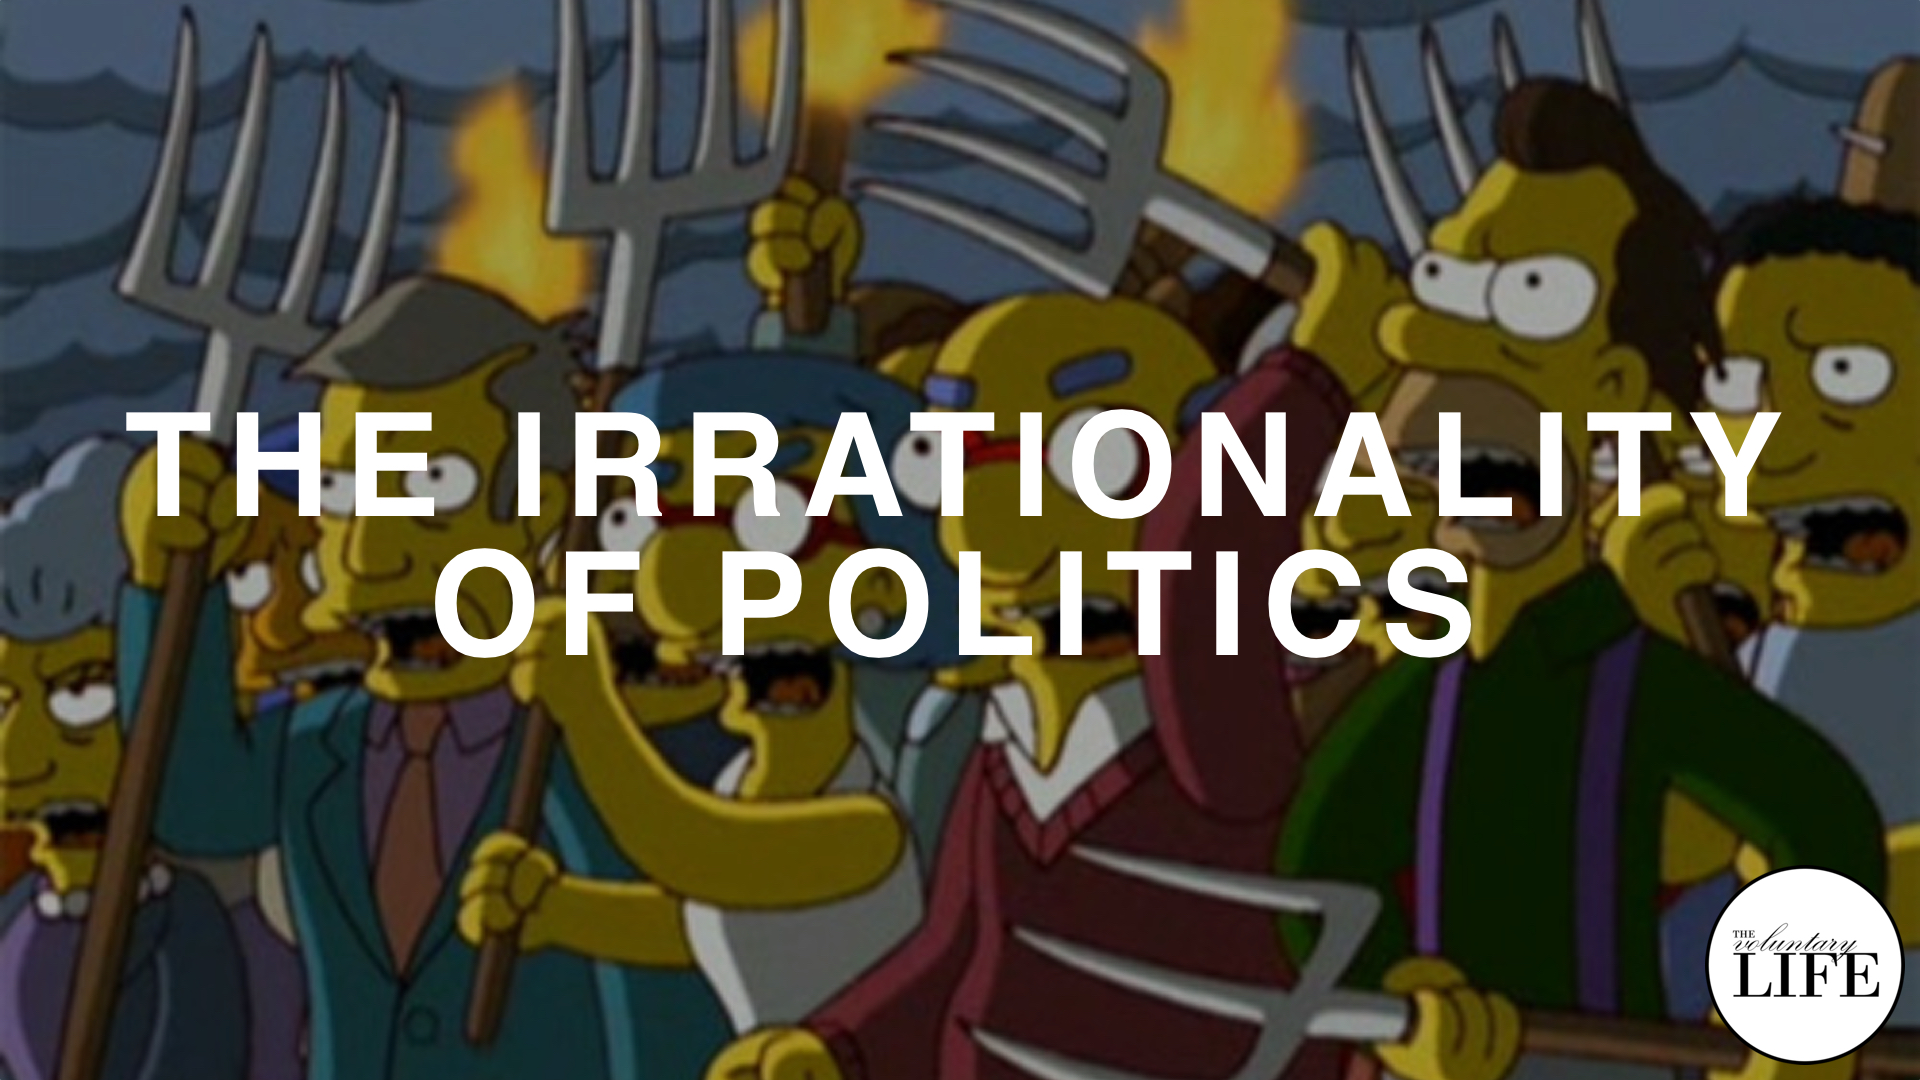 261 Thinking Rationally Part 7: The Irrationality Of Politics